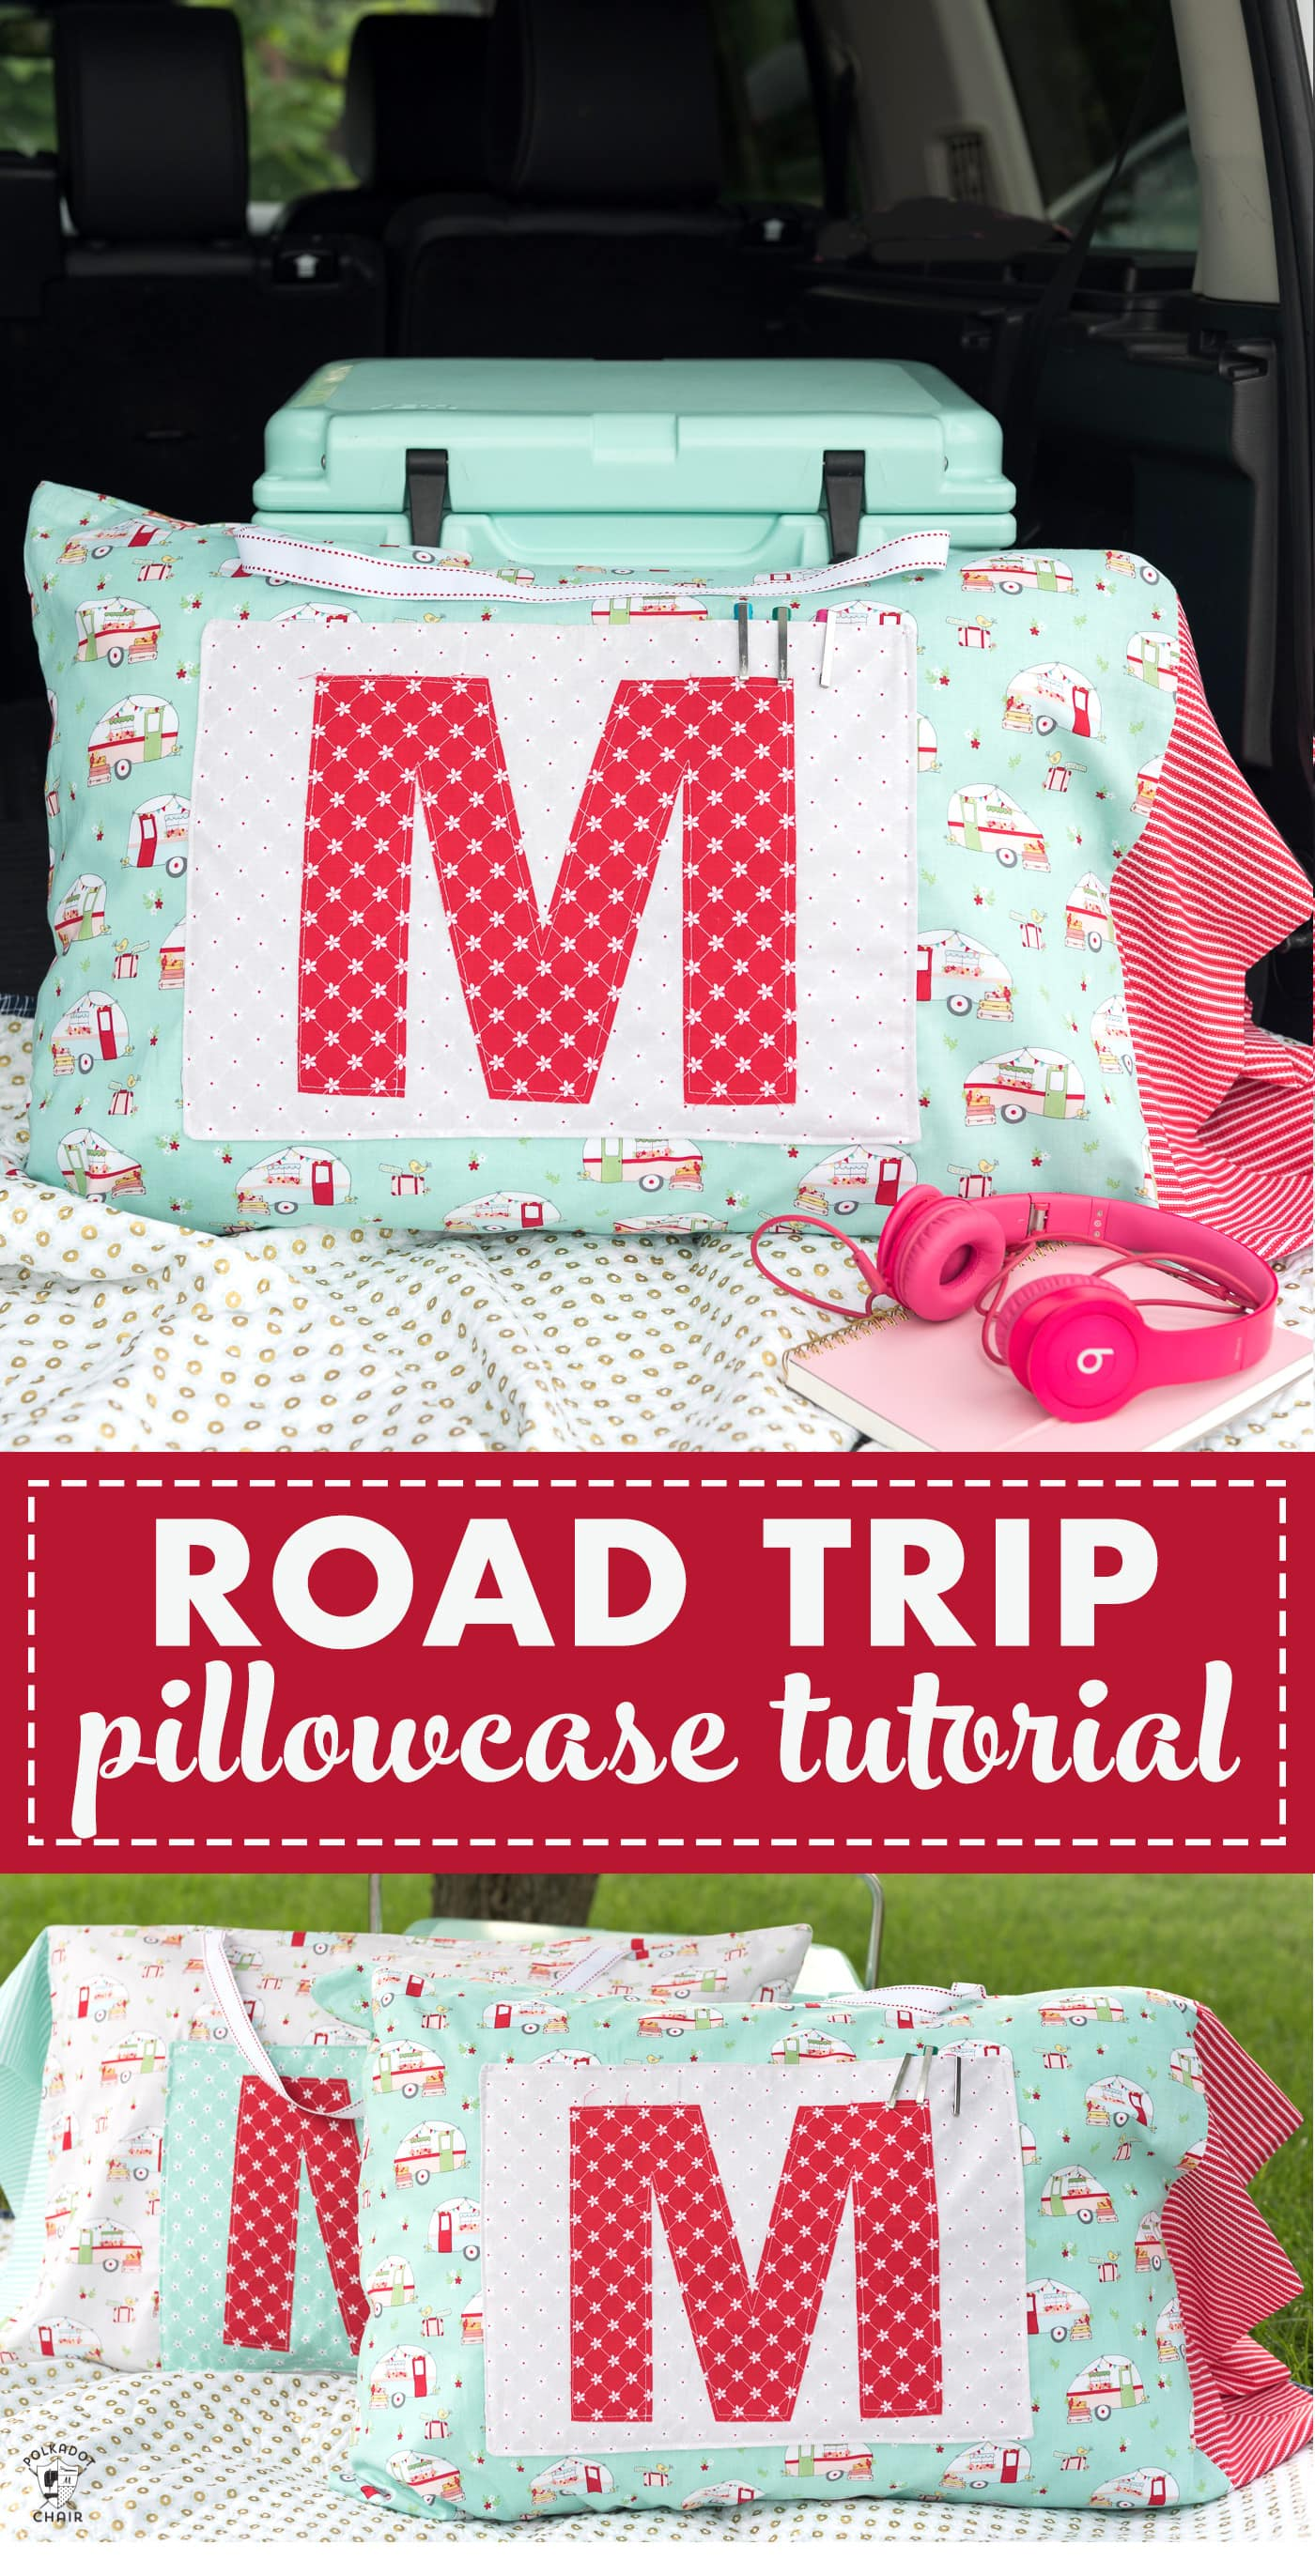 Make a cute pillowcase perfect for a road trip with this free tutorial. A road trip pillowcase for kids to take on trips with a pocket. #roadtrippillowcase #pillowcase #sewing #sew #sewingpatterns #sewingtutorials #freesewingtutorials